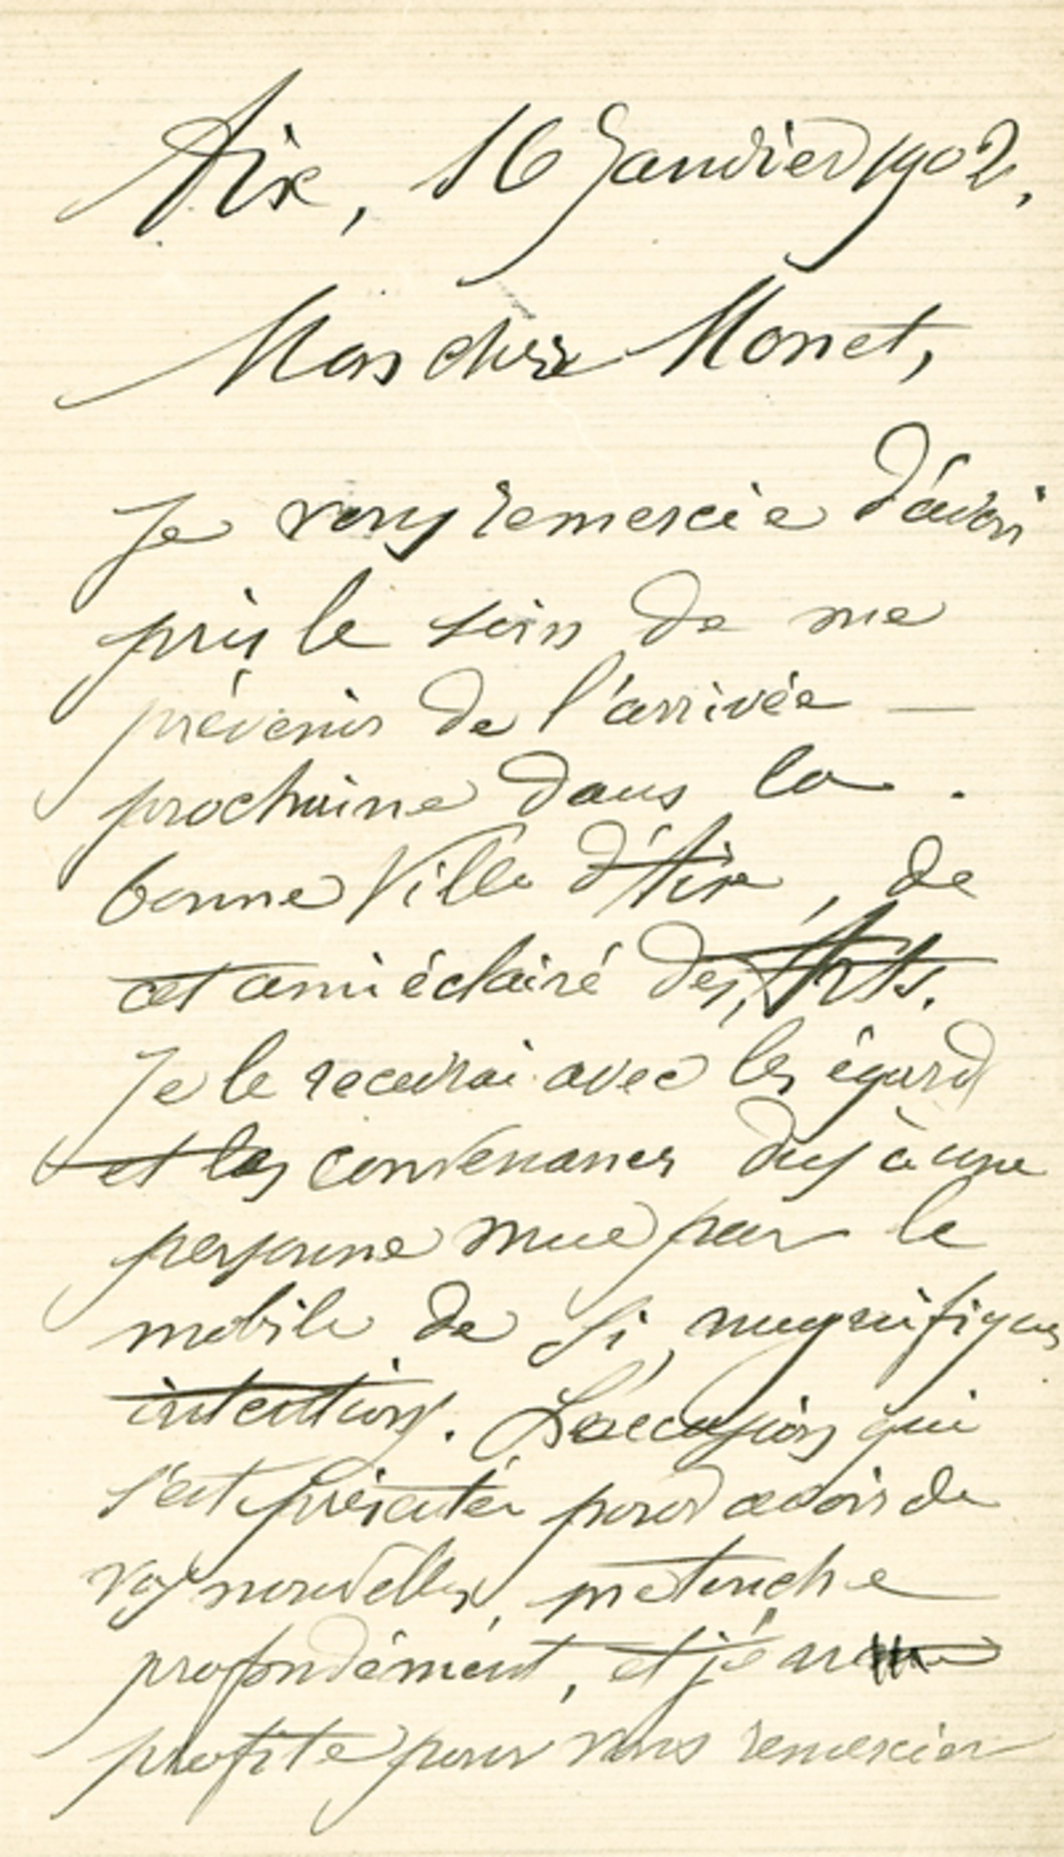 Letter from Paul Cézanne to Claude Monet, January 16, 1902. Photo: Musée des Lettres et Manuscrits, Paris.